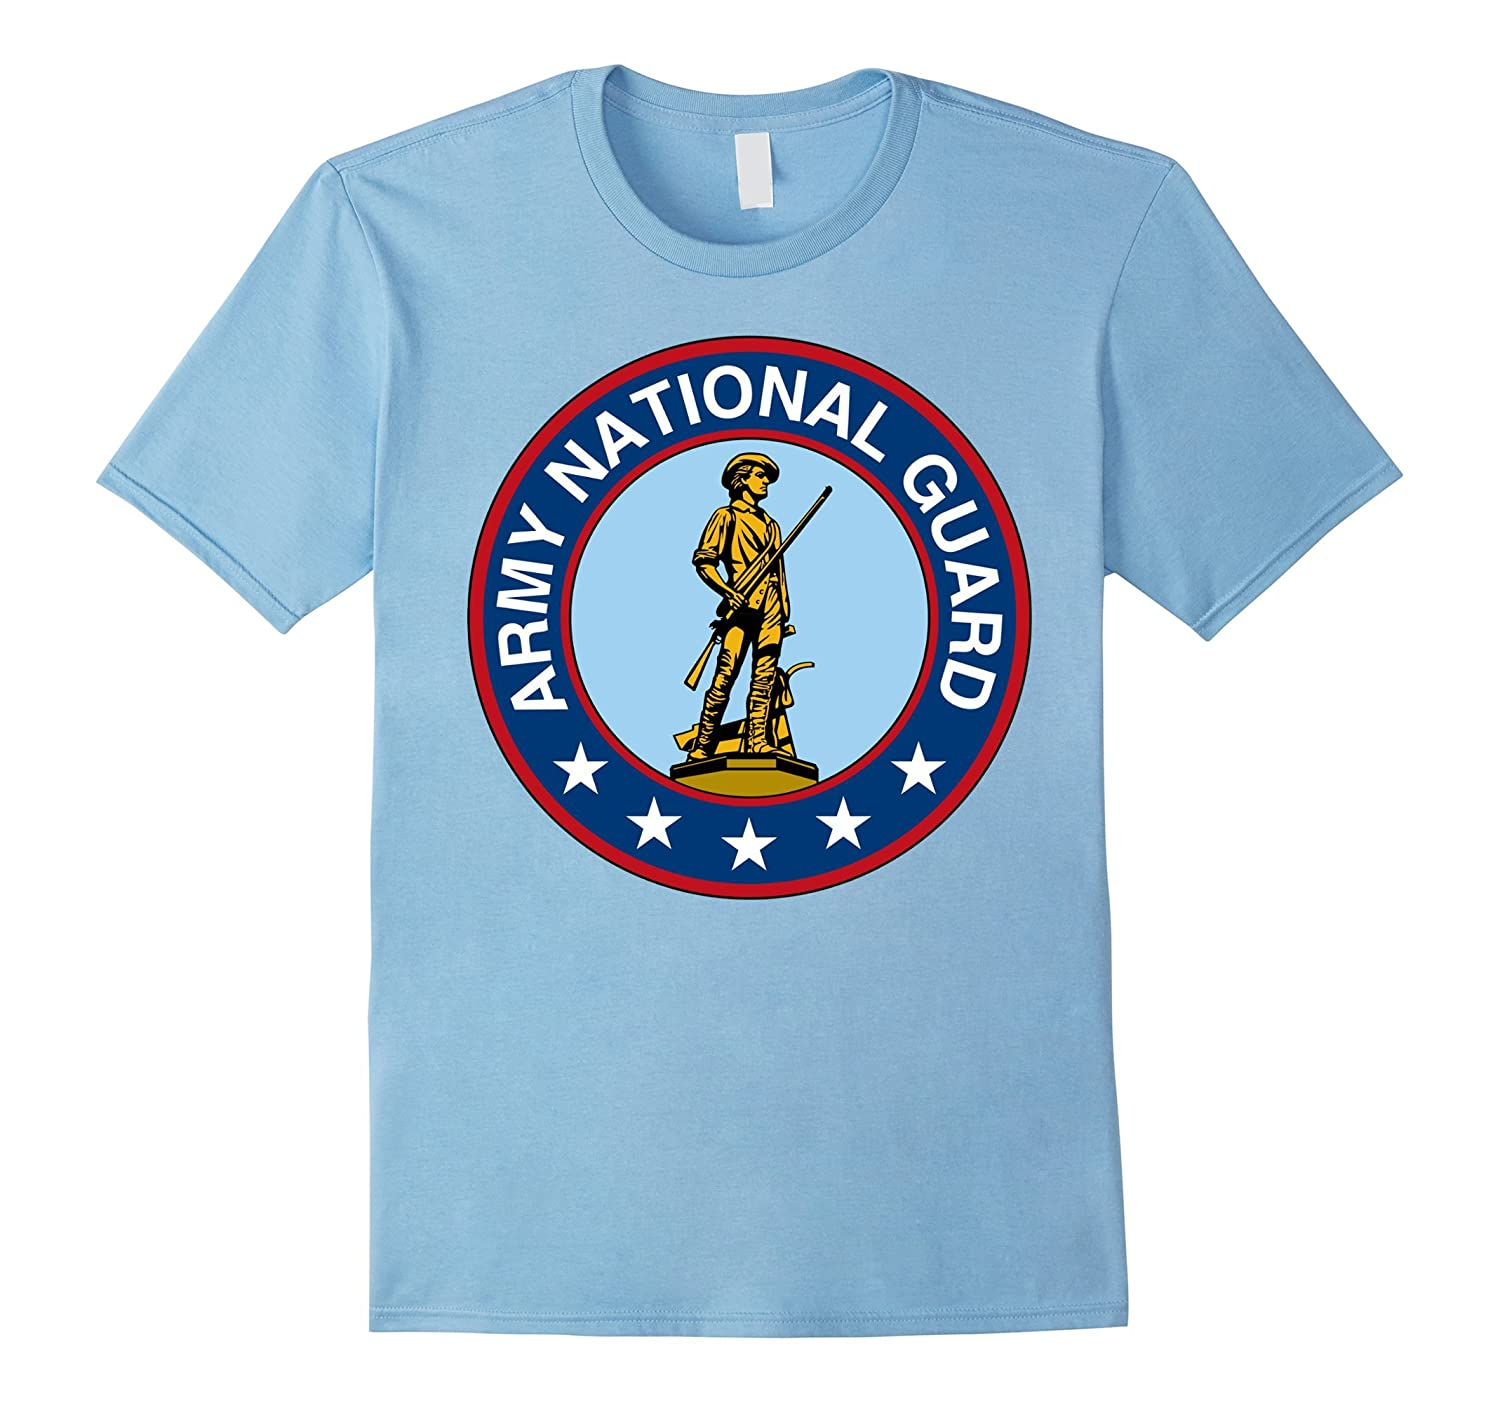 Army National Guard Always Ready Always There T-Shirt